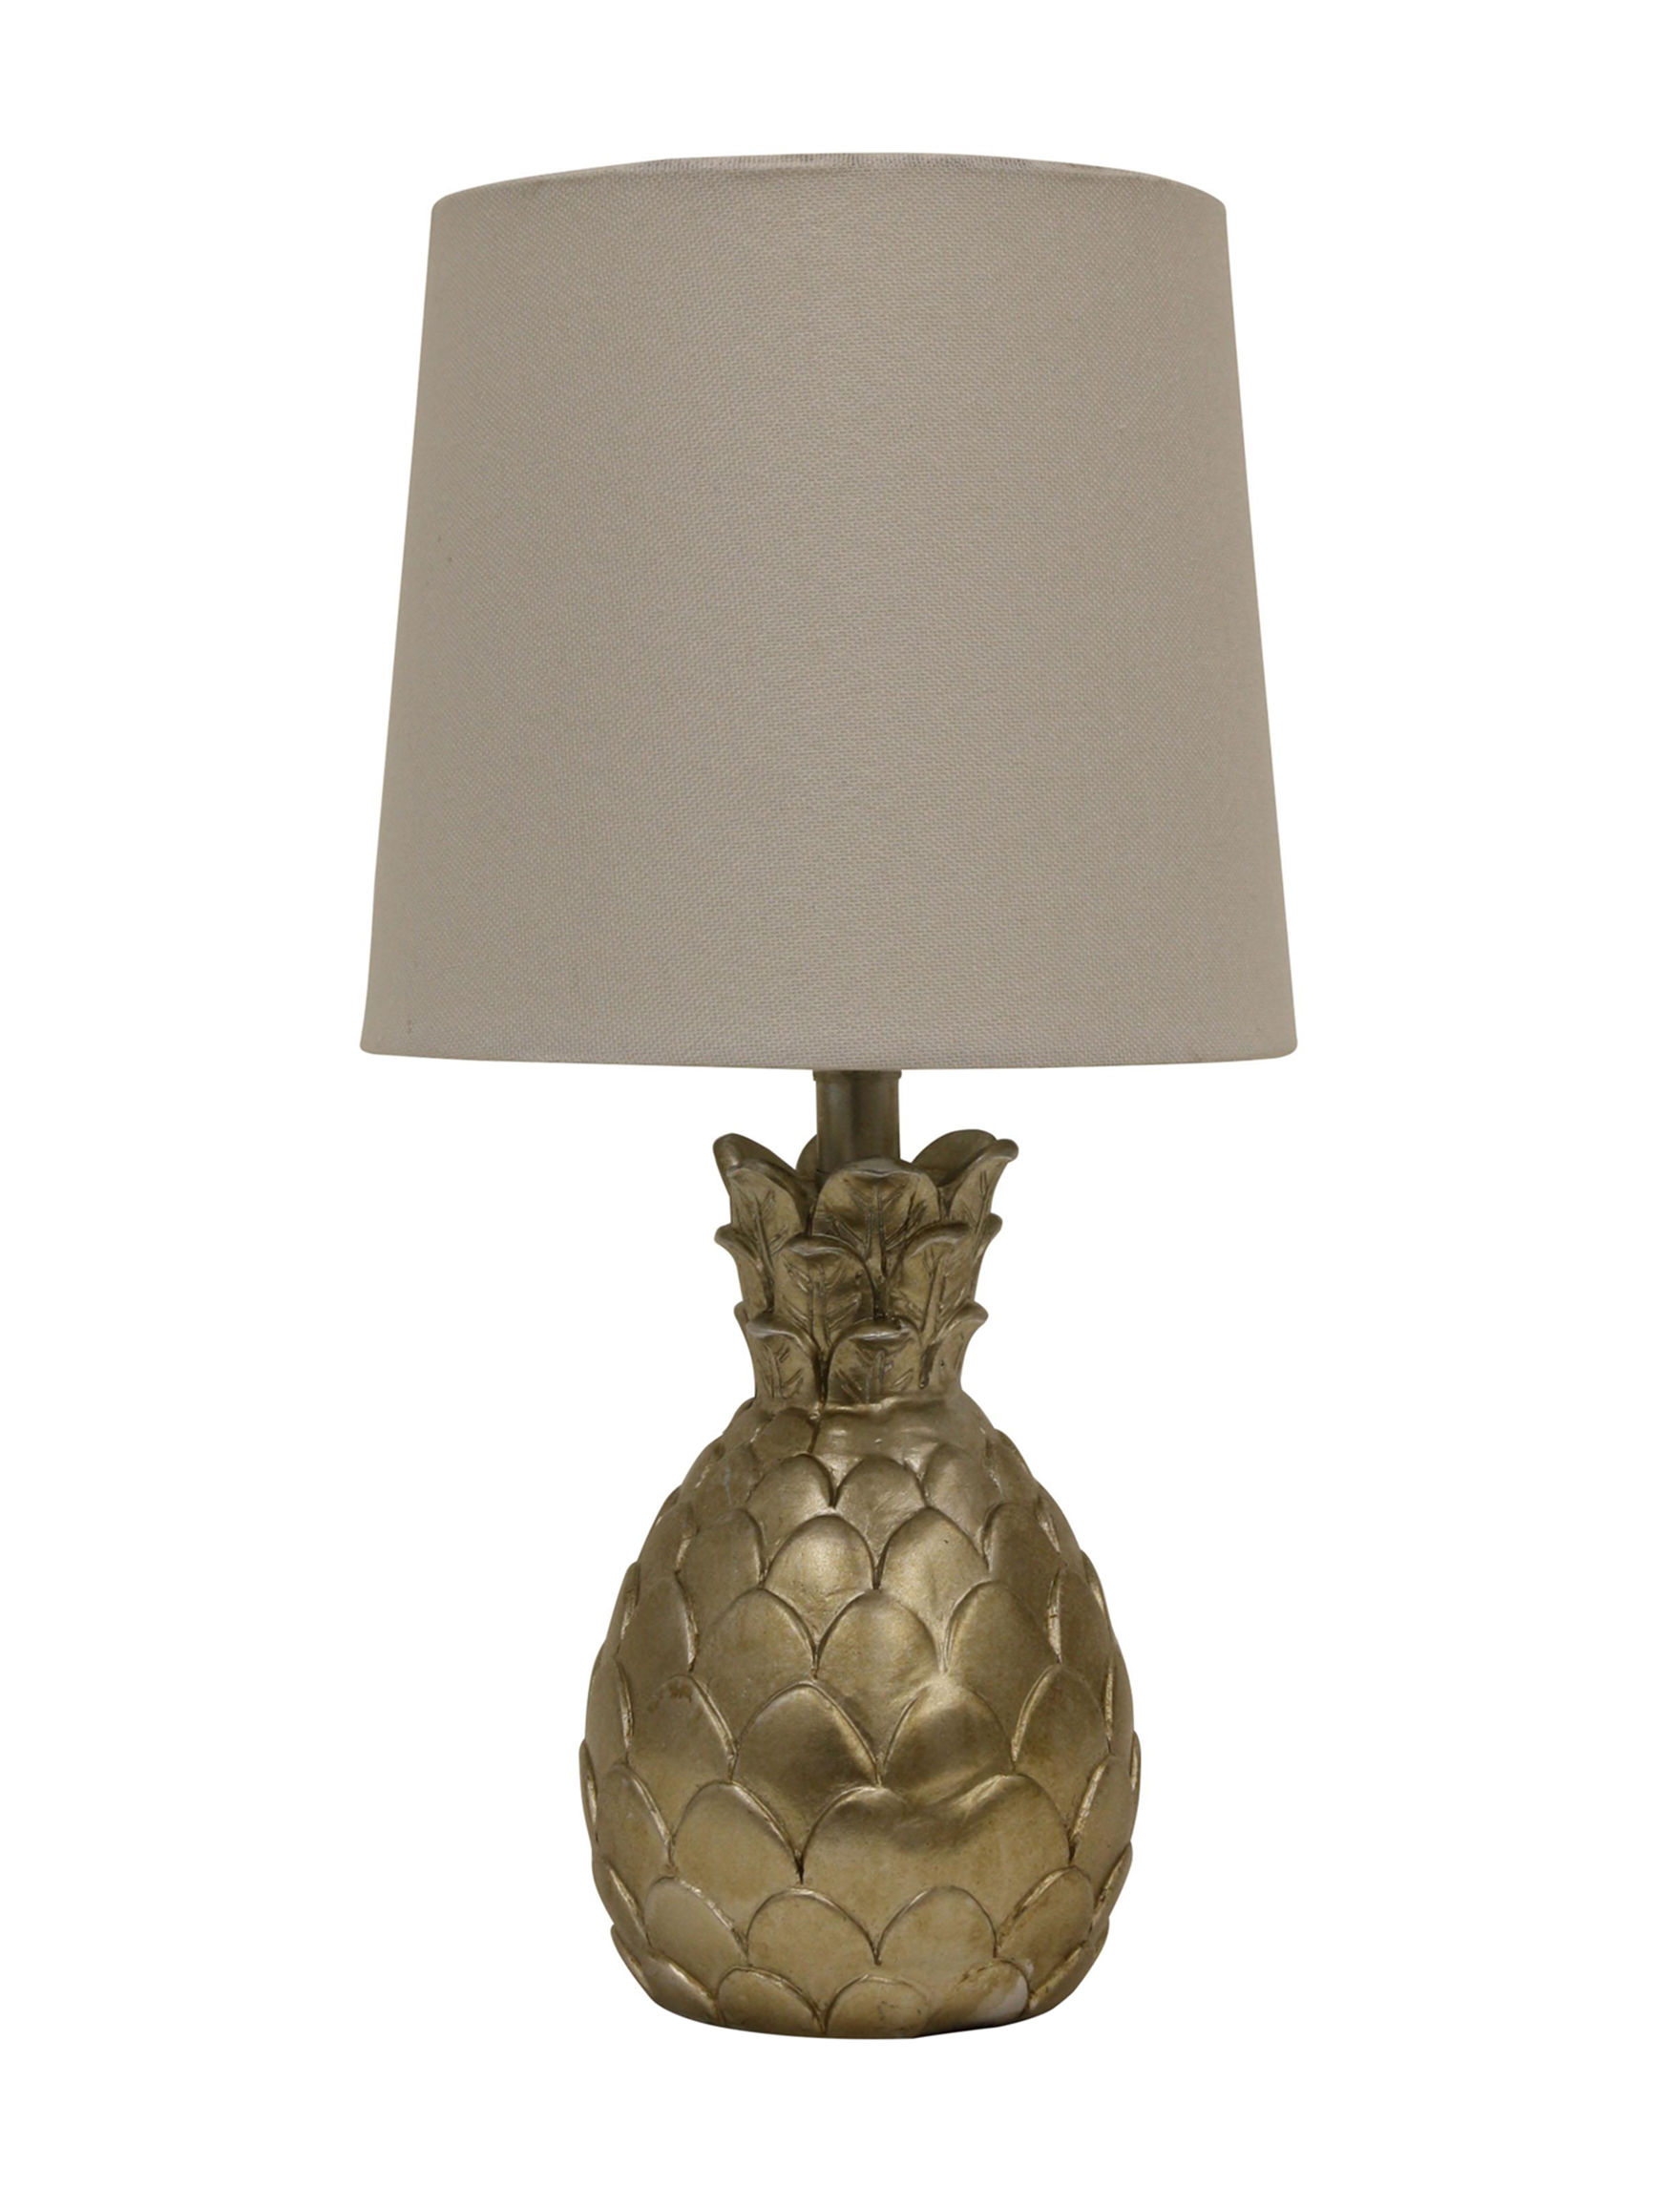 Decor Therapy Silver Leaf Table Lamps Lighting & Lamps